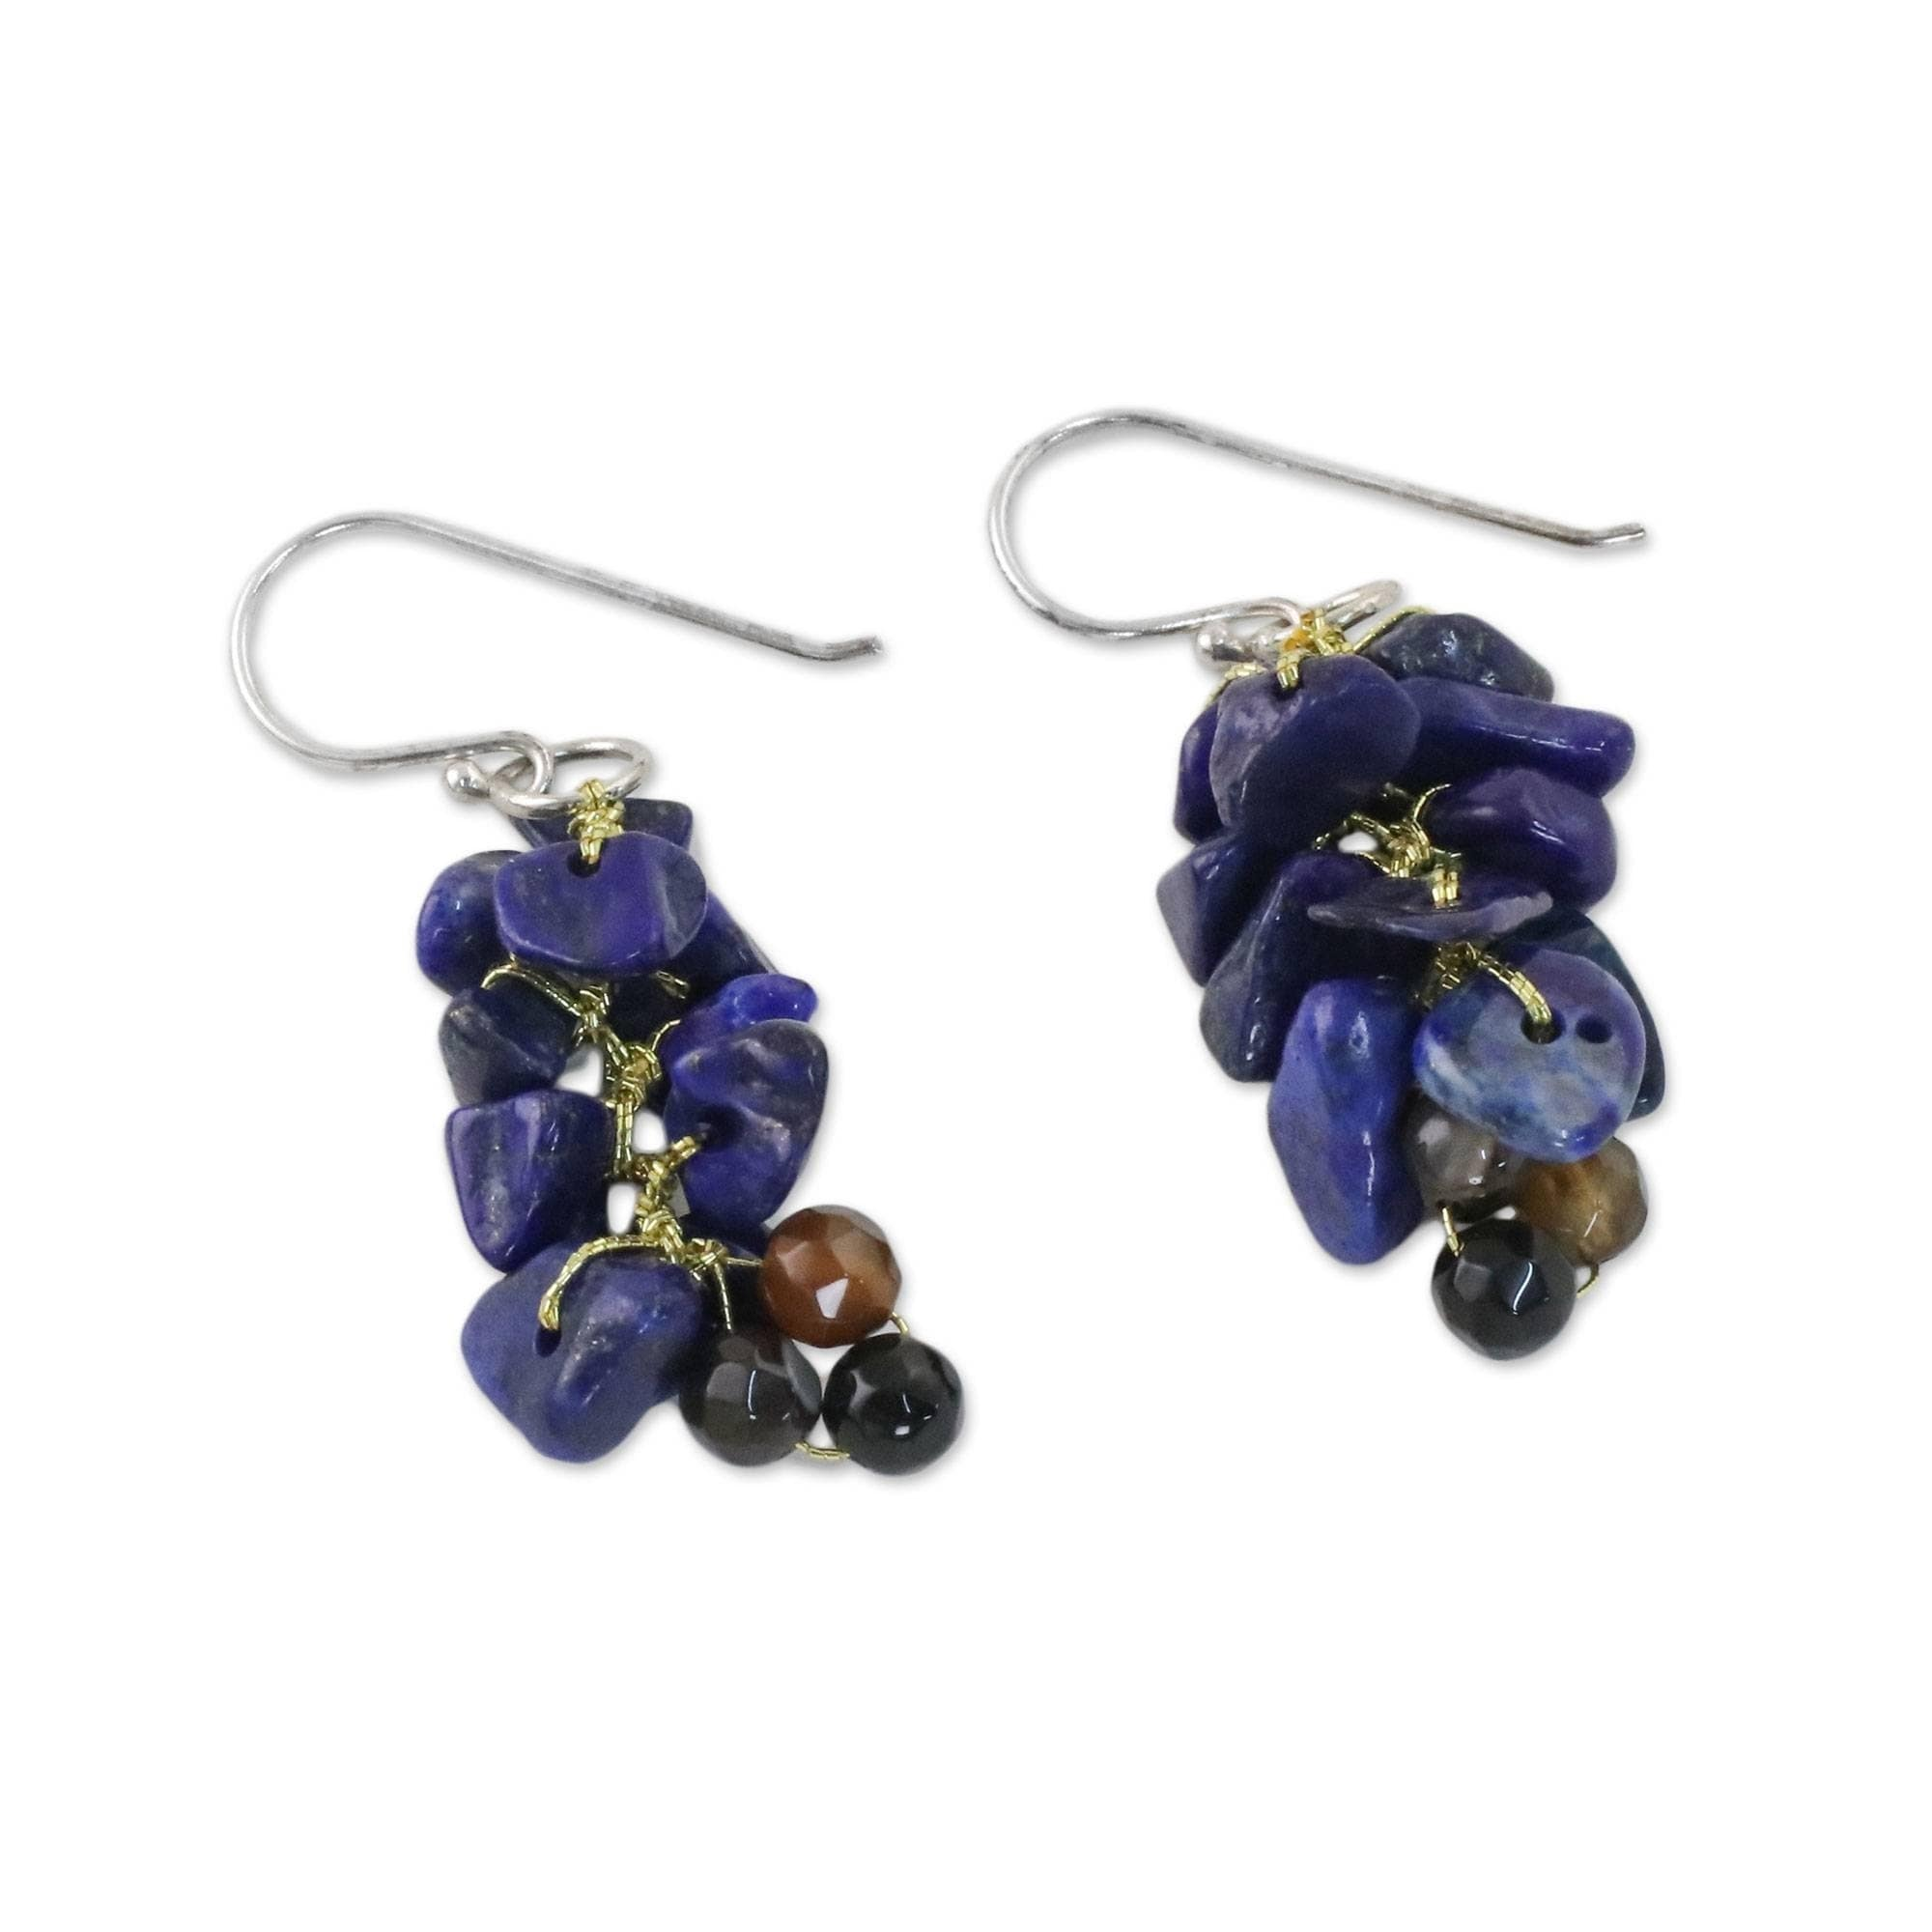 3dc77cb30f007 Silver 'Afternoon Blue' Lapis Lazuli Agate Earrings (Thailand)